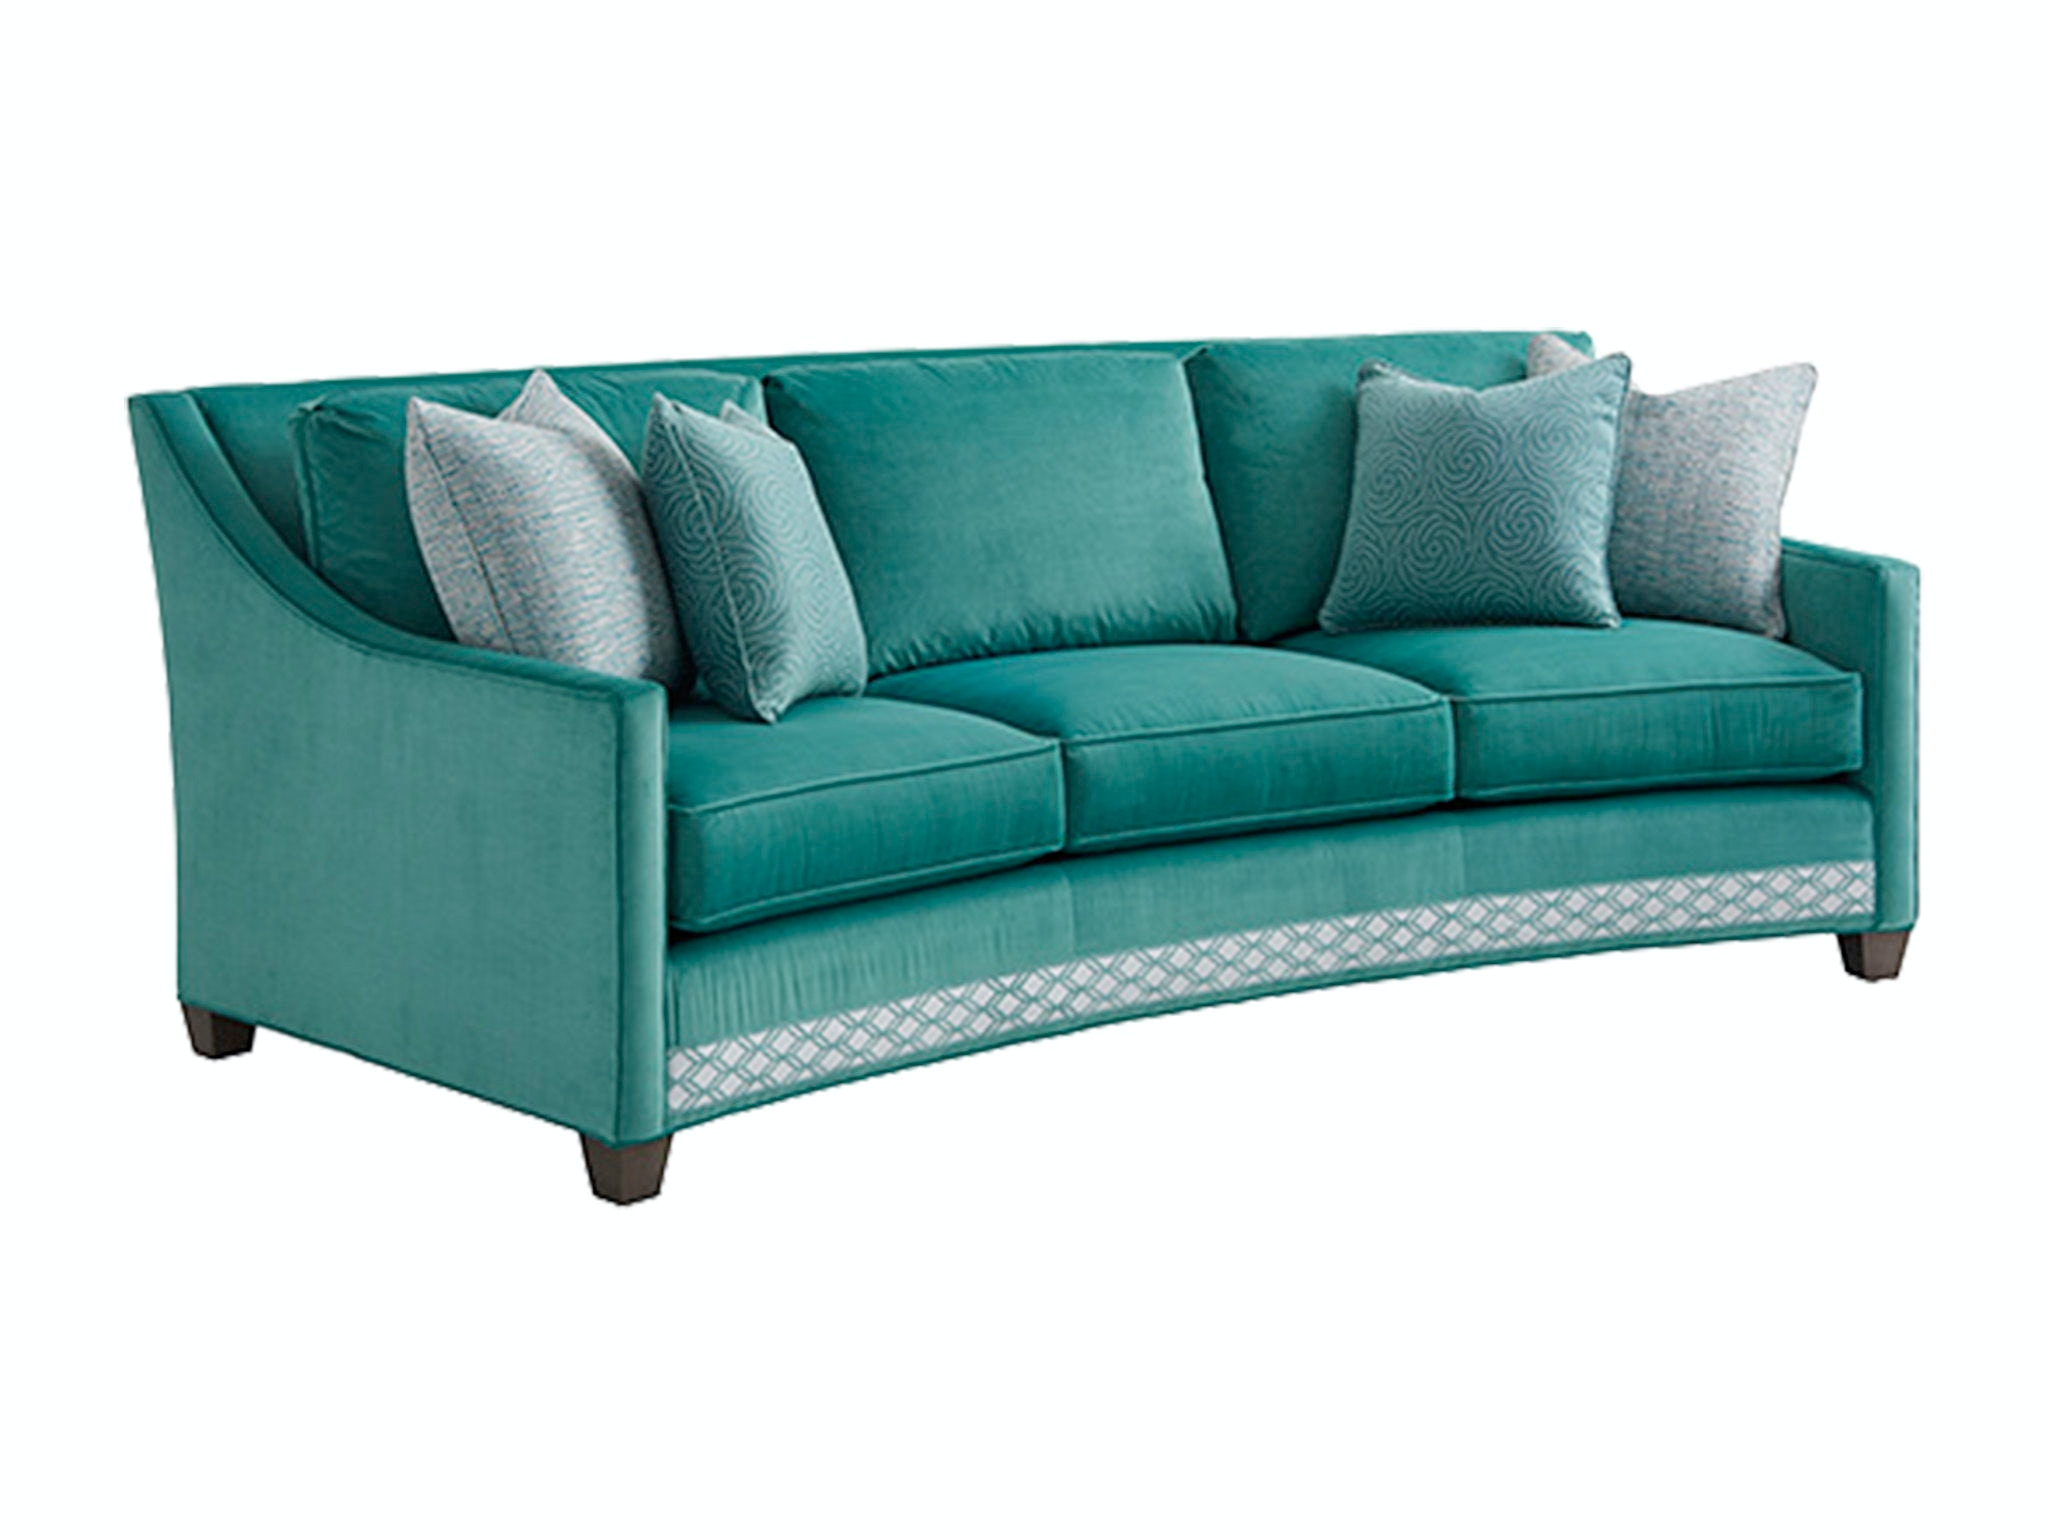 Lexington Living Room Valenza Curved Sofa